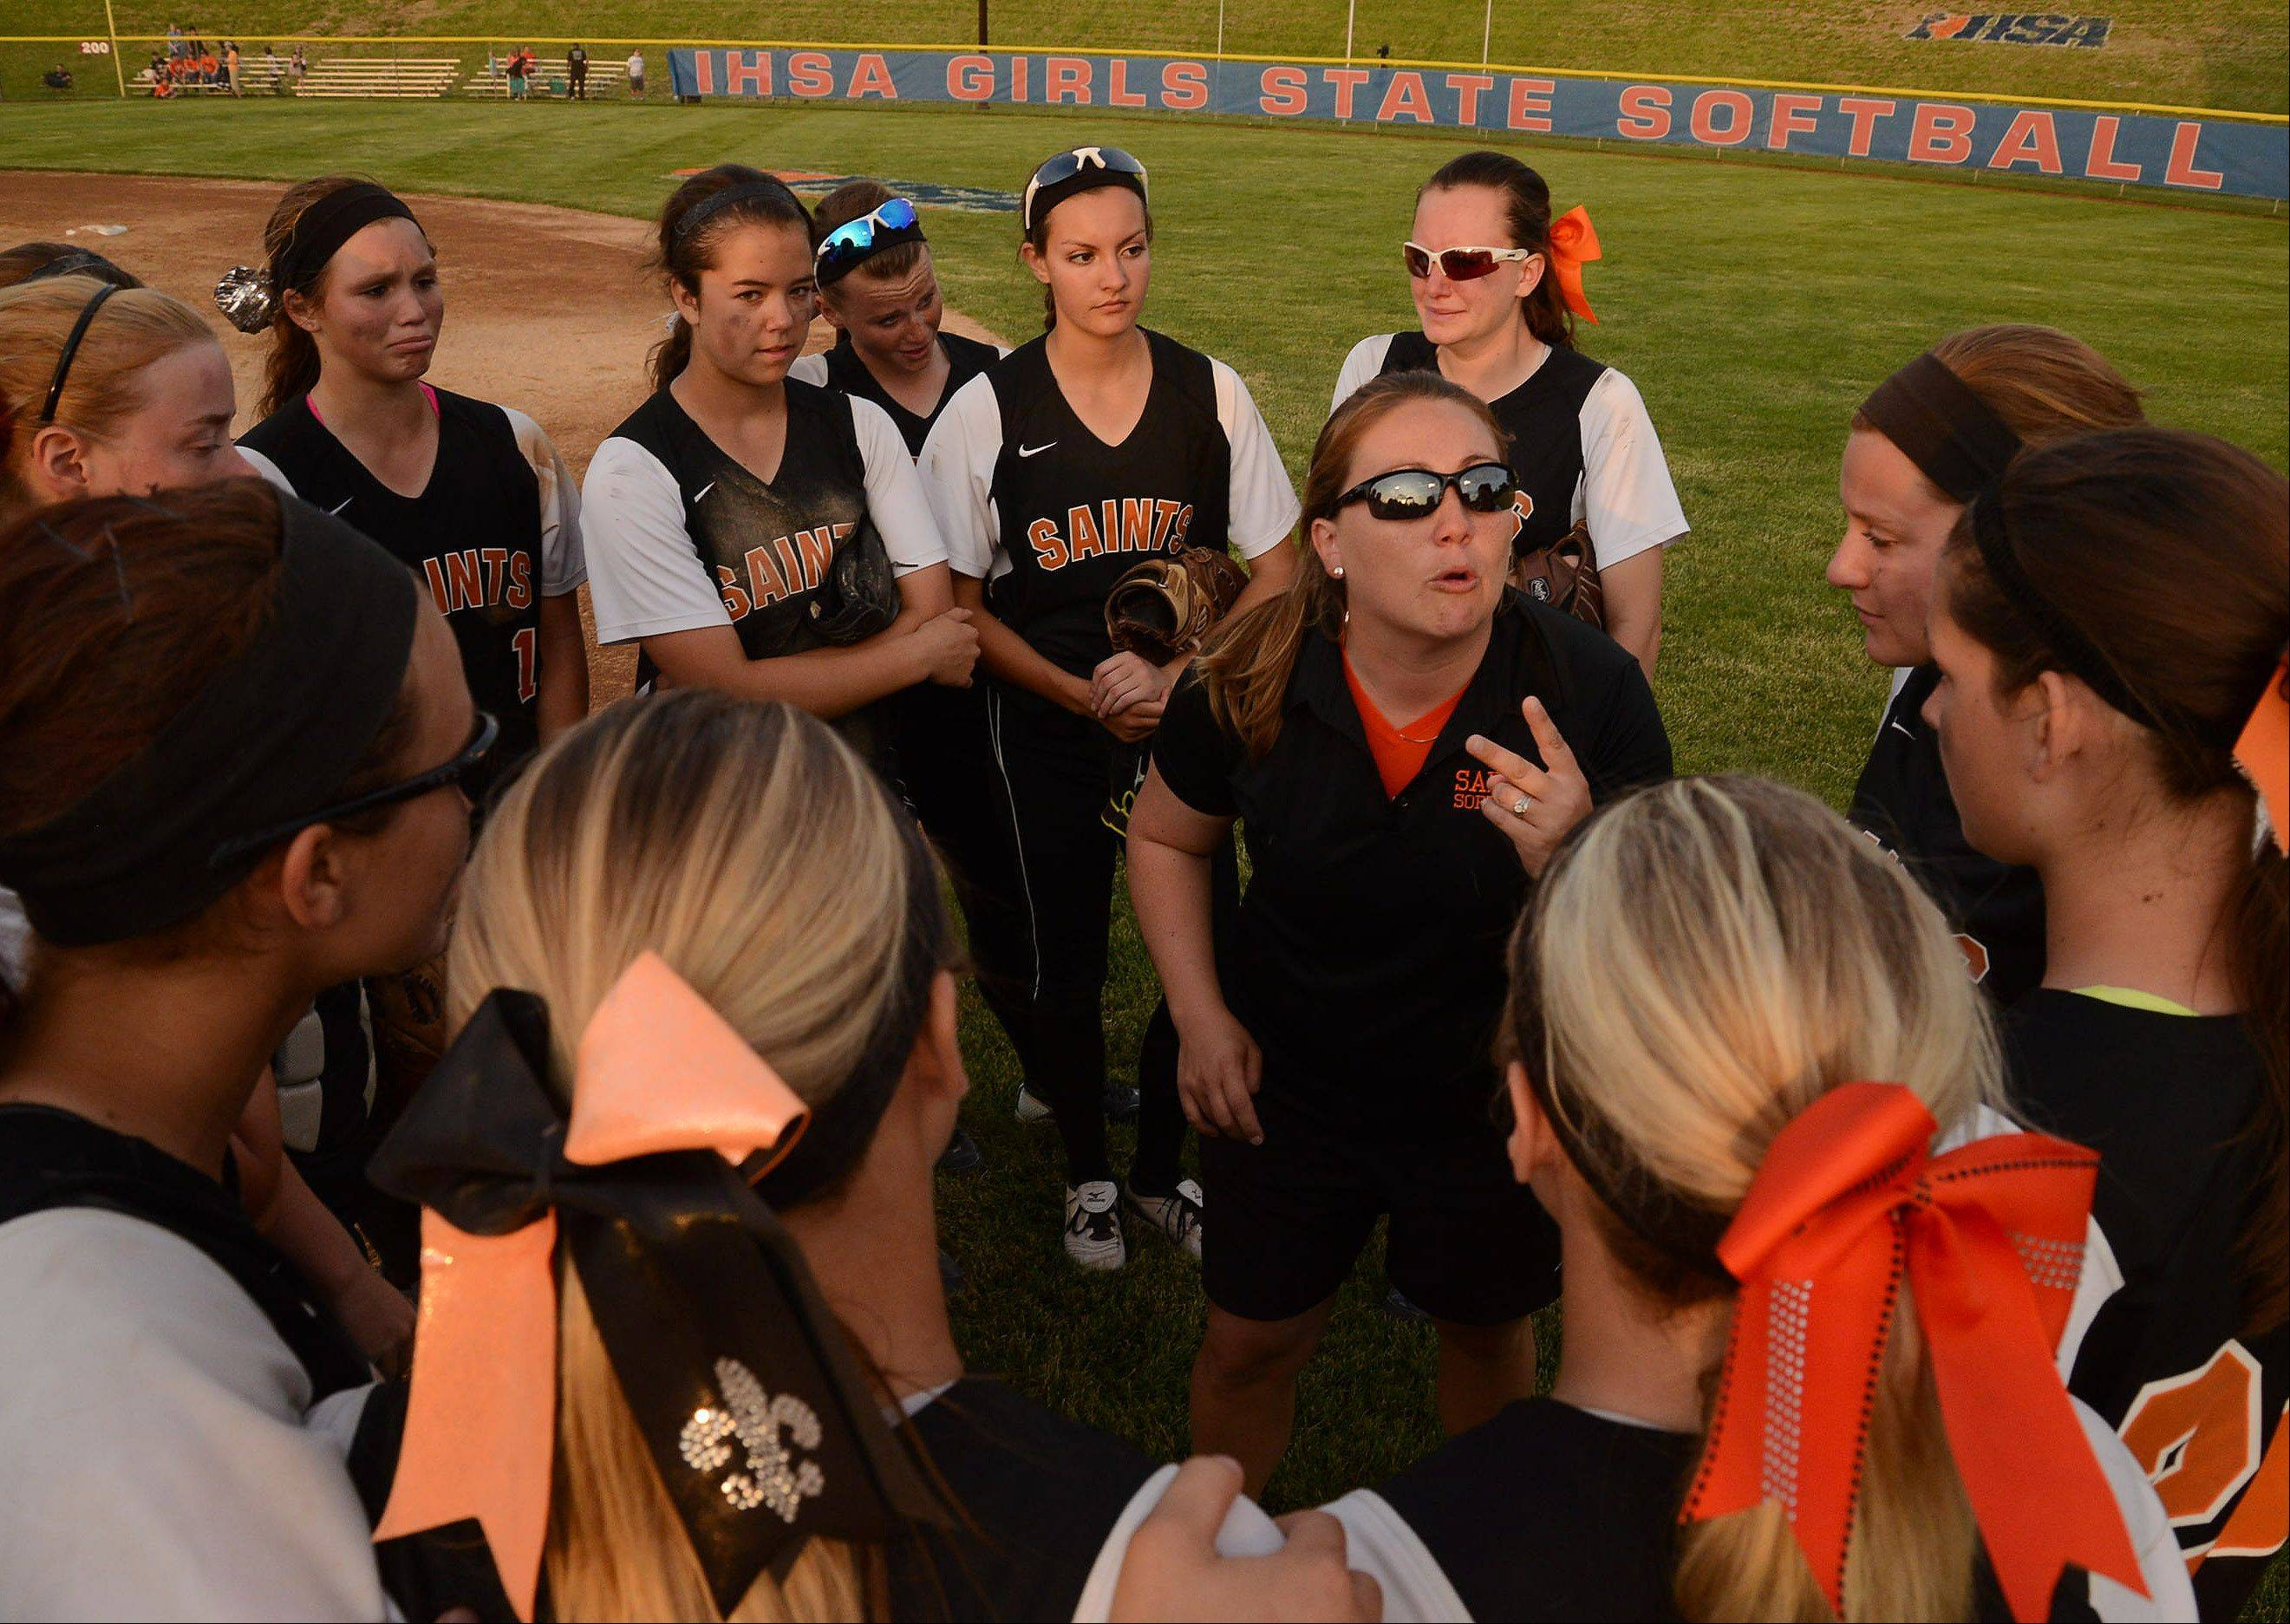 St. Charles East coach Kelly Hora congratulates her team for finishing 2nd to Minooka in the Class 4A softball championship game.